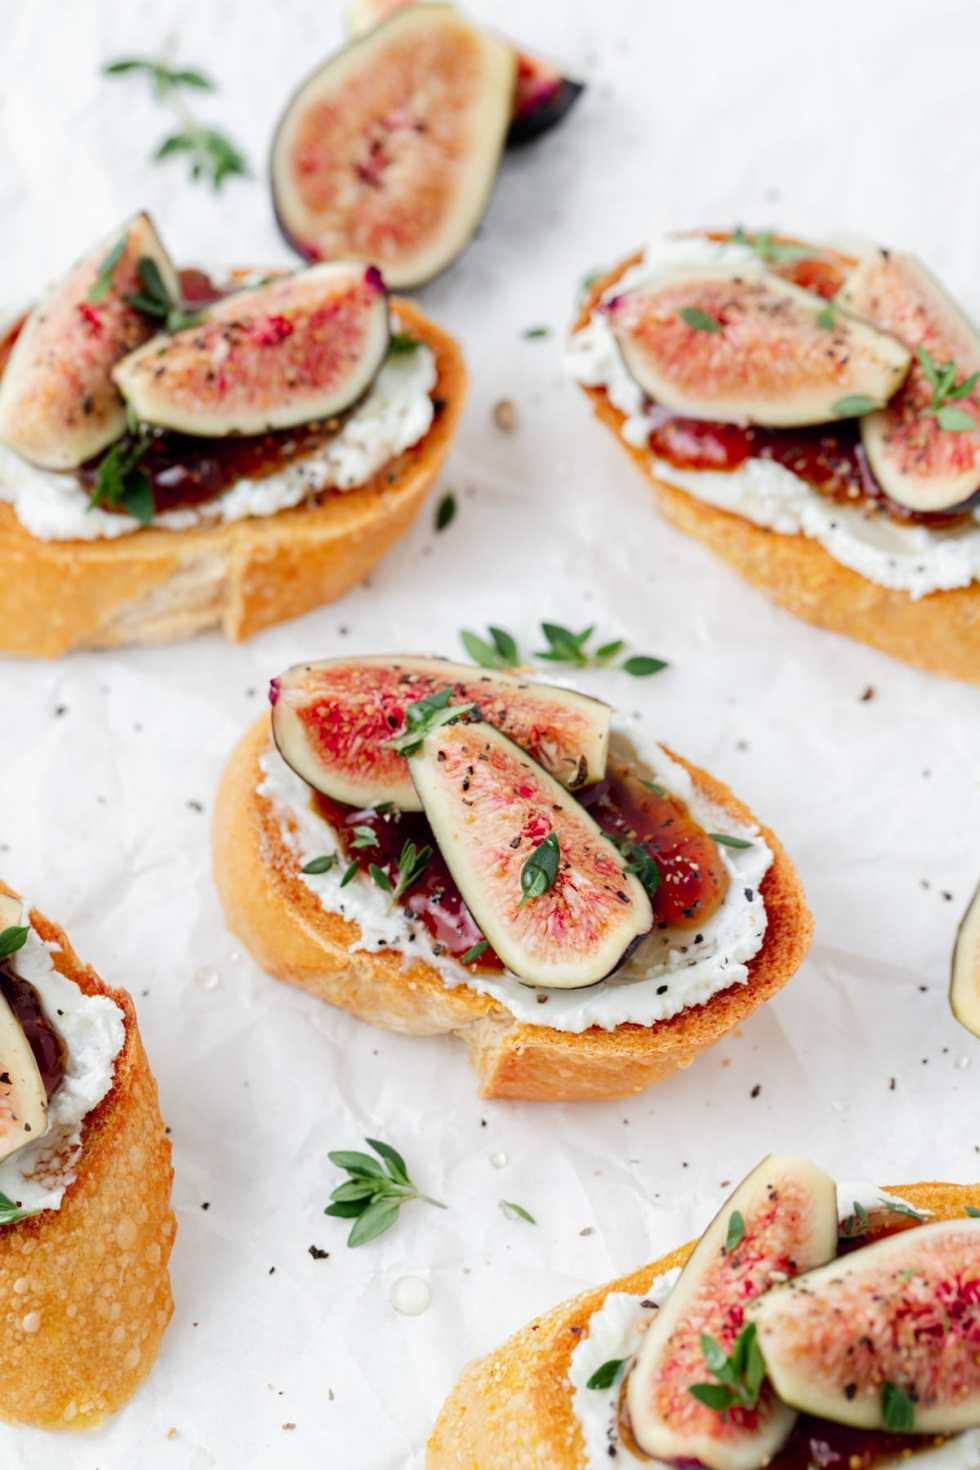 fig and goat cheese crostini with fresh thyme on top